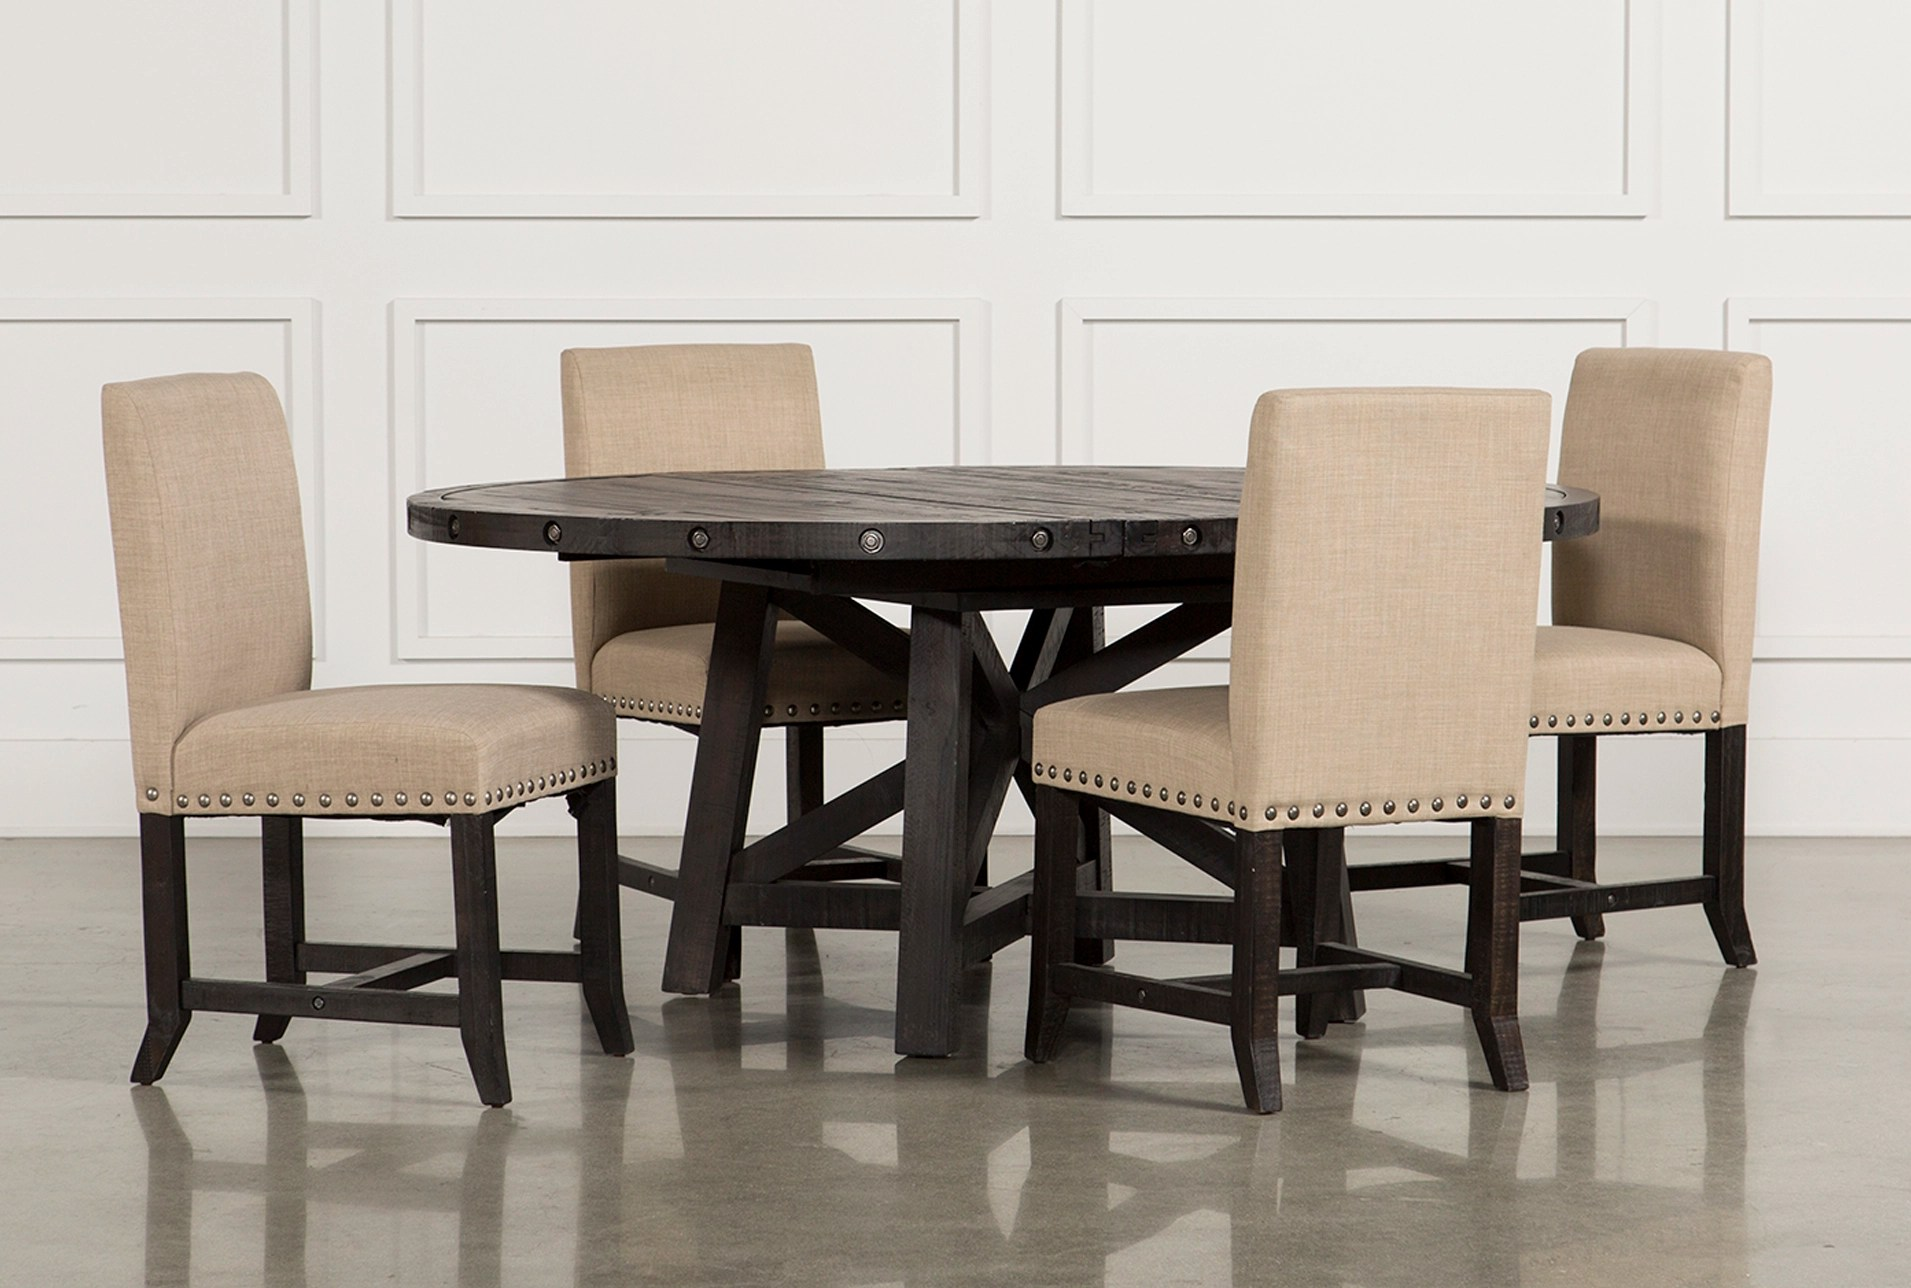 upholstered chairs for dining room bar table with jaxon 5 piece round set w living spaces qty 1 has been successfully added to your cart